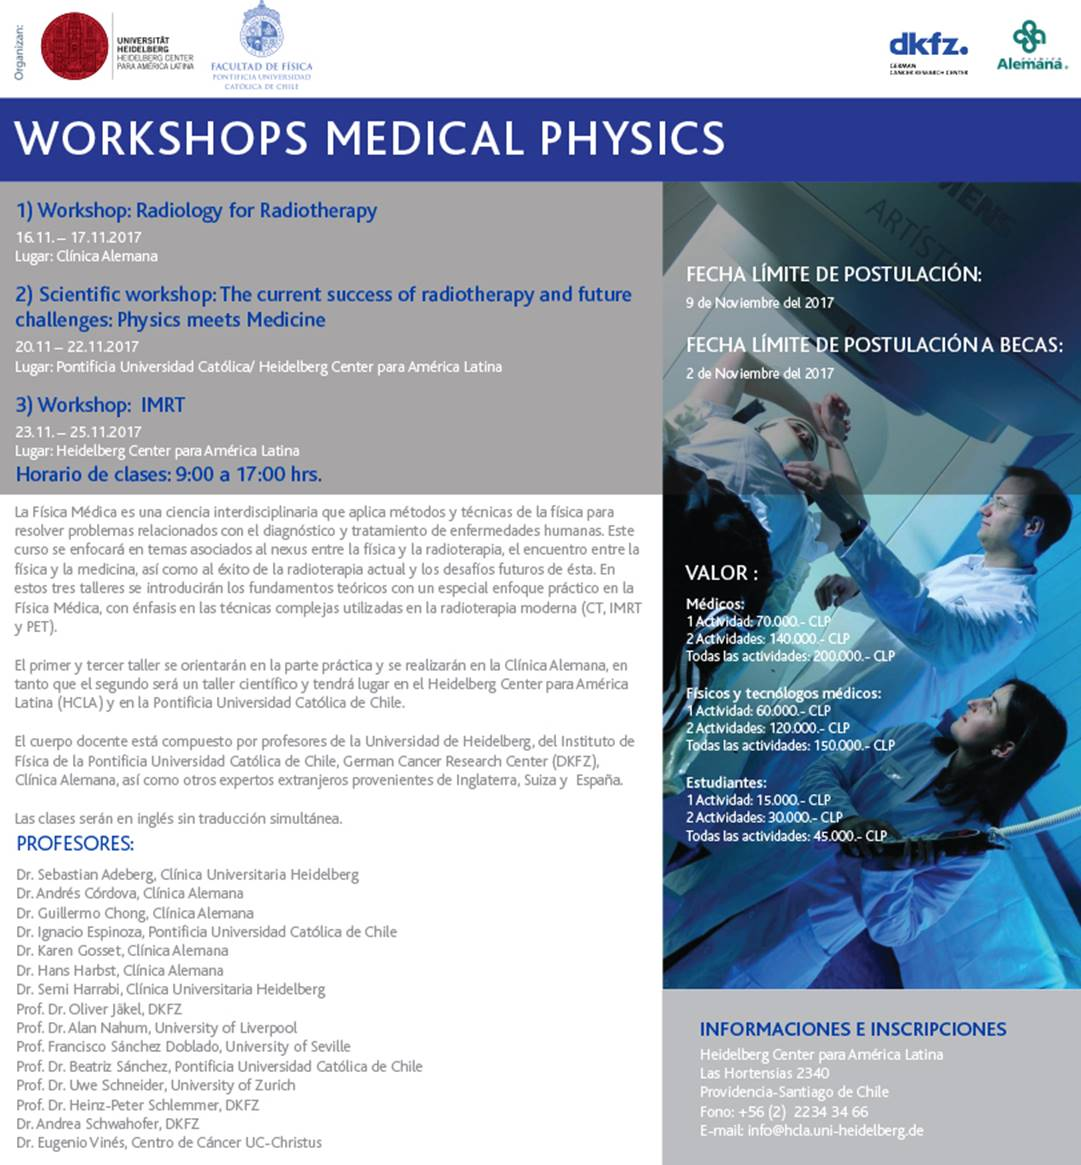 mailing workshops medical physics 20171004